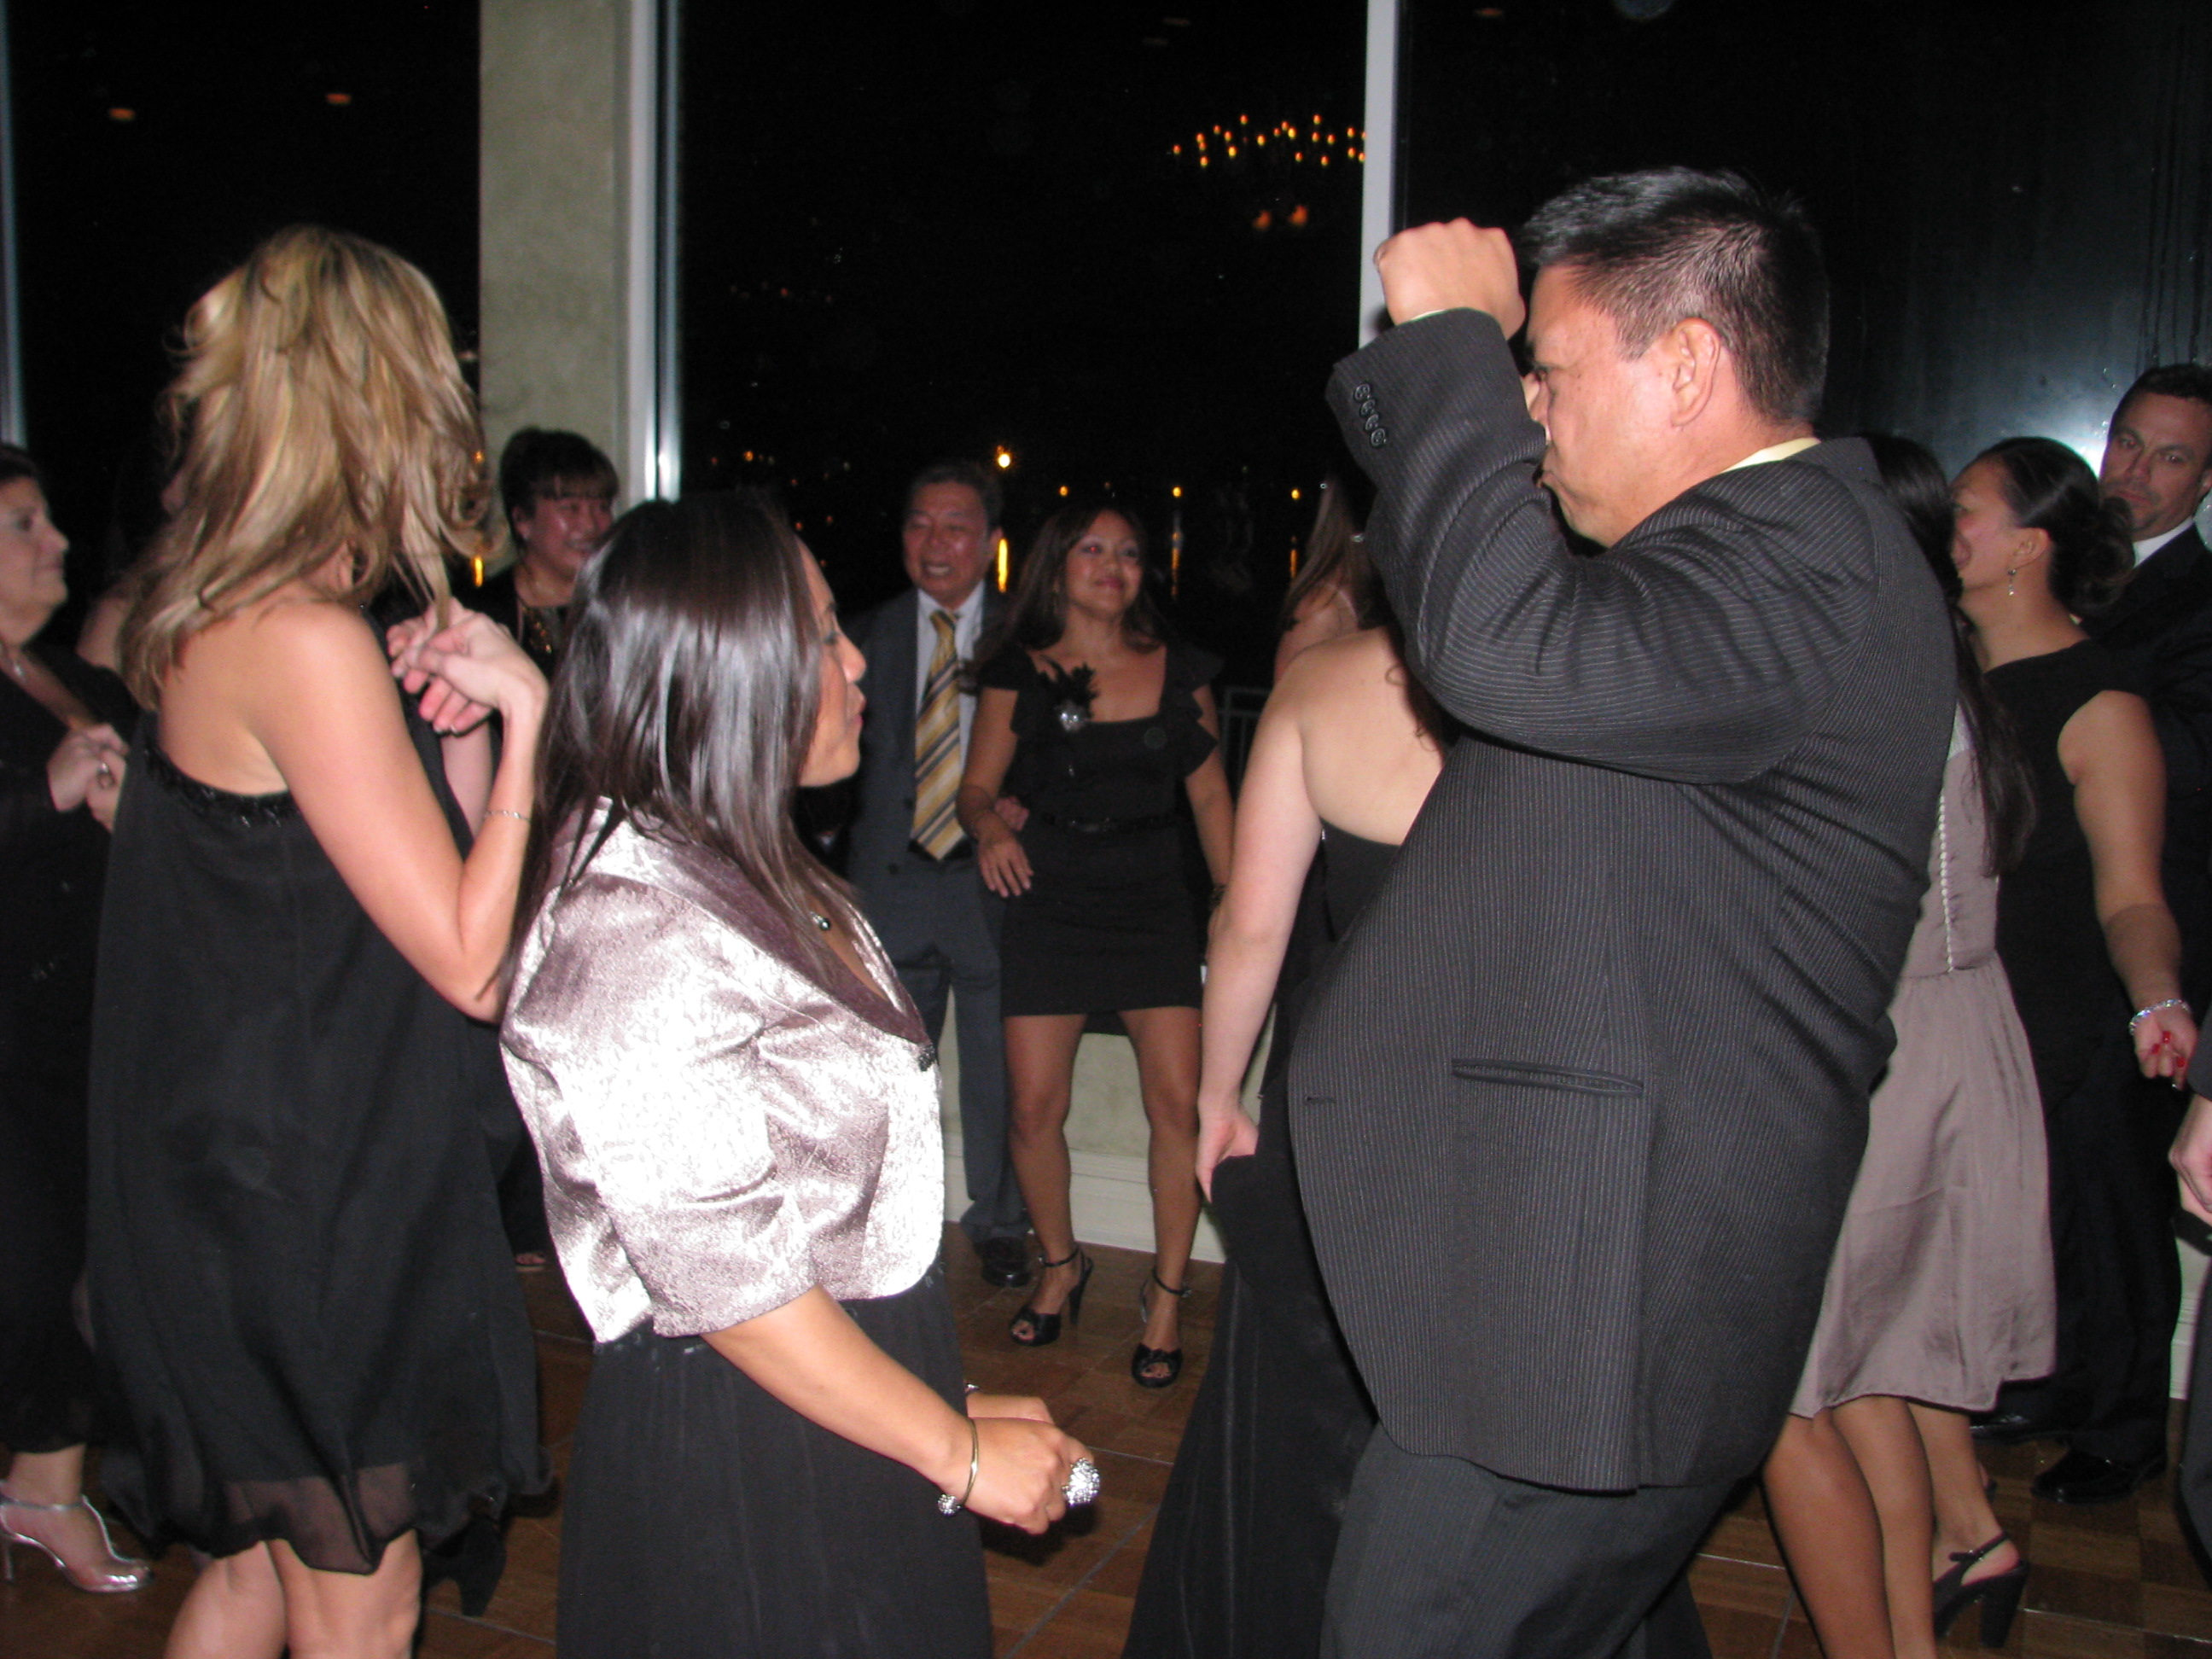 Dancing with Fun Multicultural Wedding DJ at The View On The Hudson